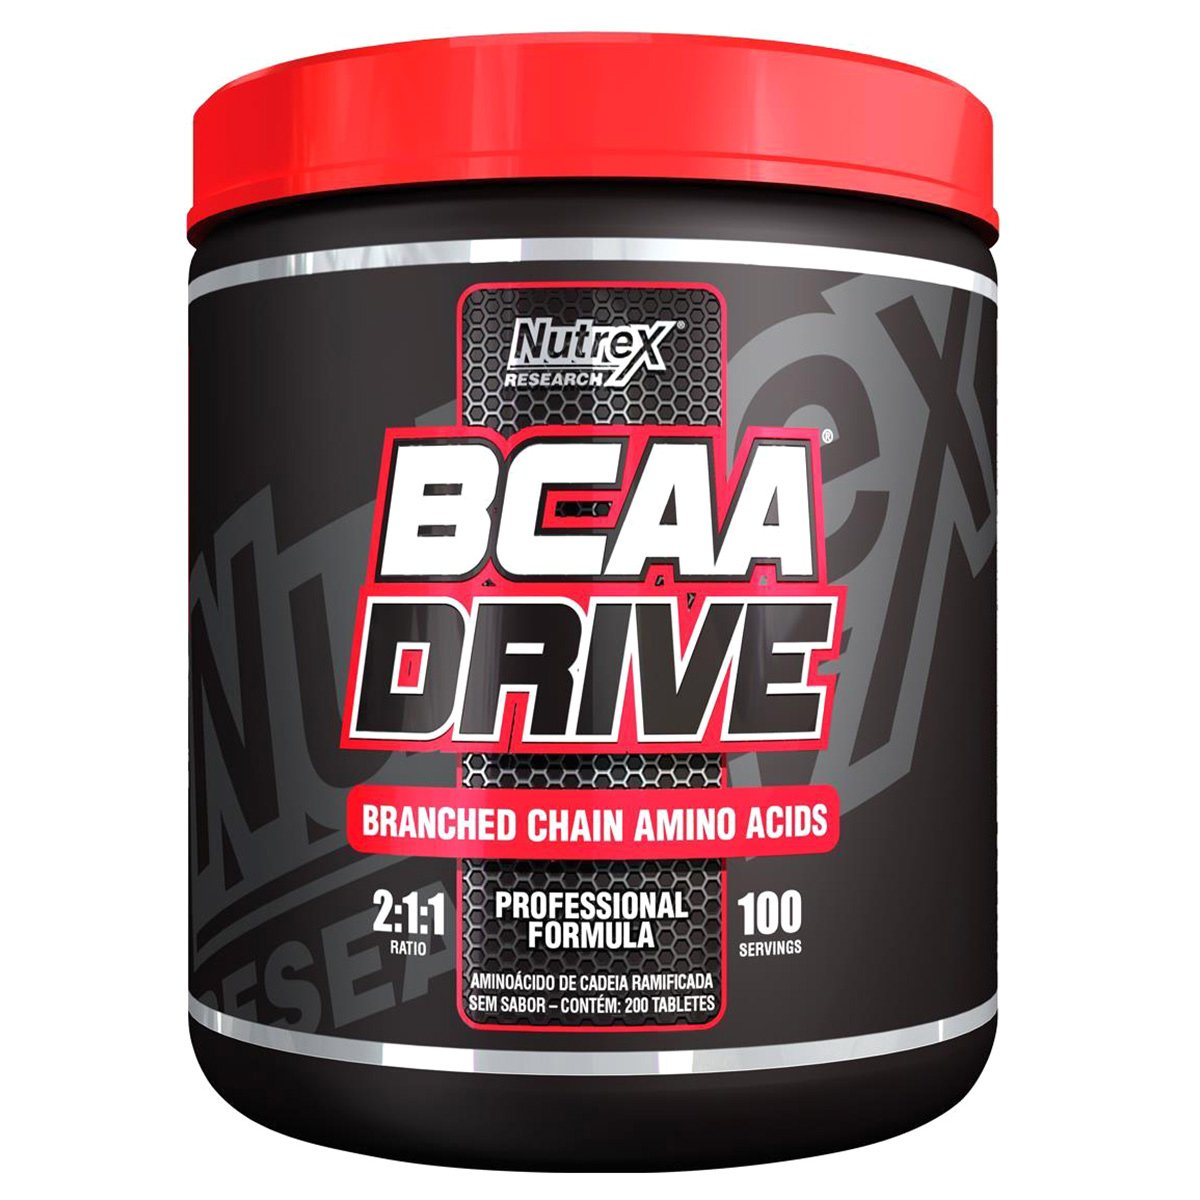 BCAA DRIVE BRANCHED CHAIN AMINO ACIDS |200TABS| NUTREX